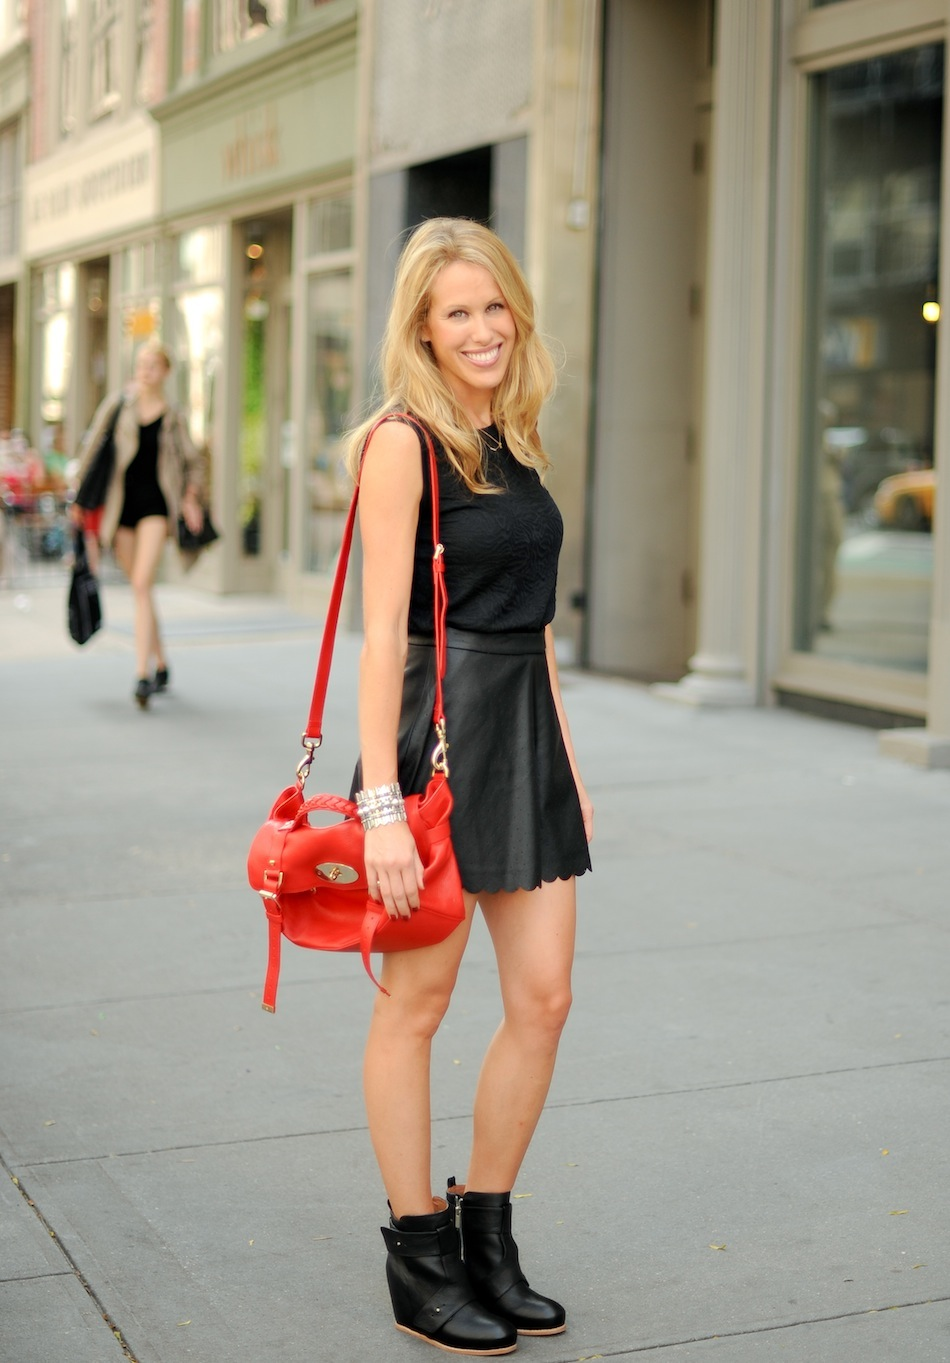 Hitting the streets of the Flatiron // FashionableHostess.com